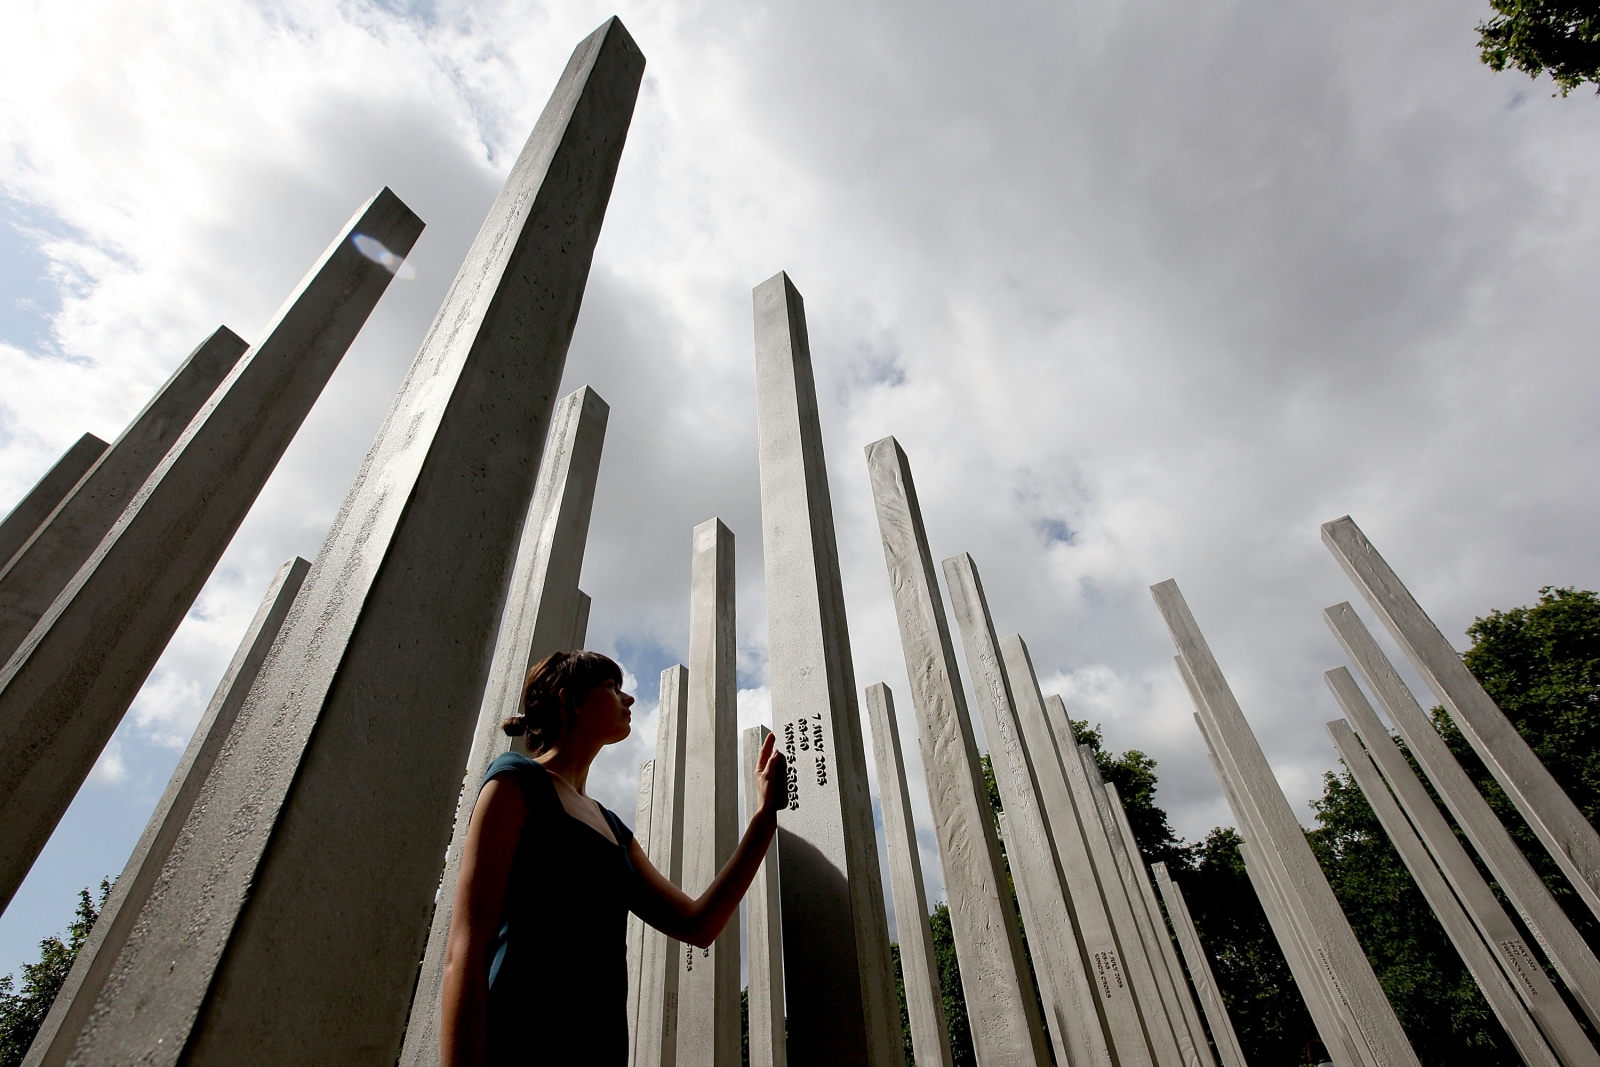 7/7 London bombings memorial